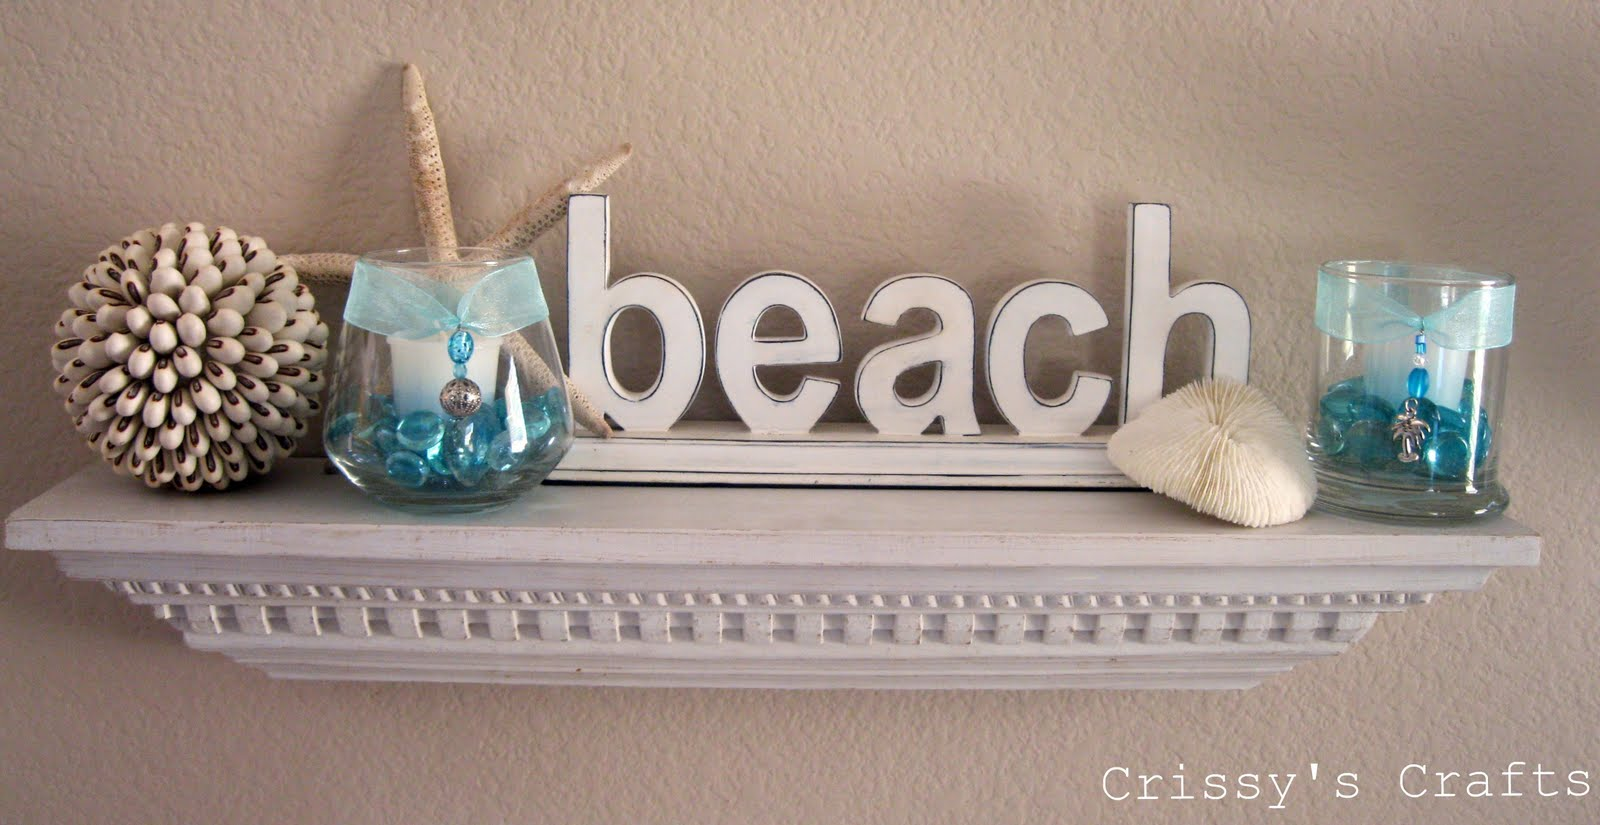 Beach Bathroom Decor: Crissy's Crafts: Beach Mantel